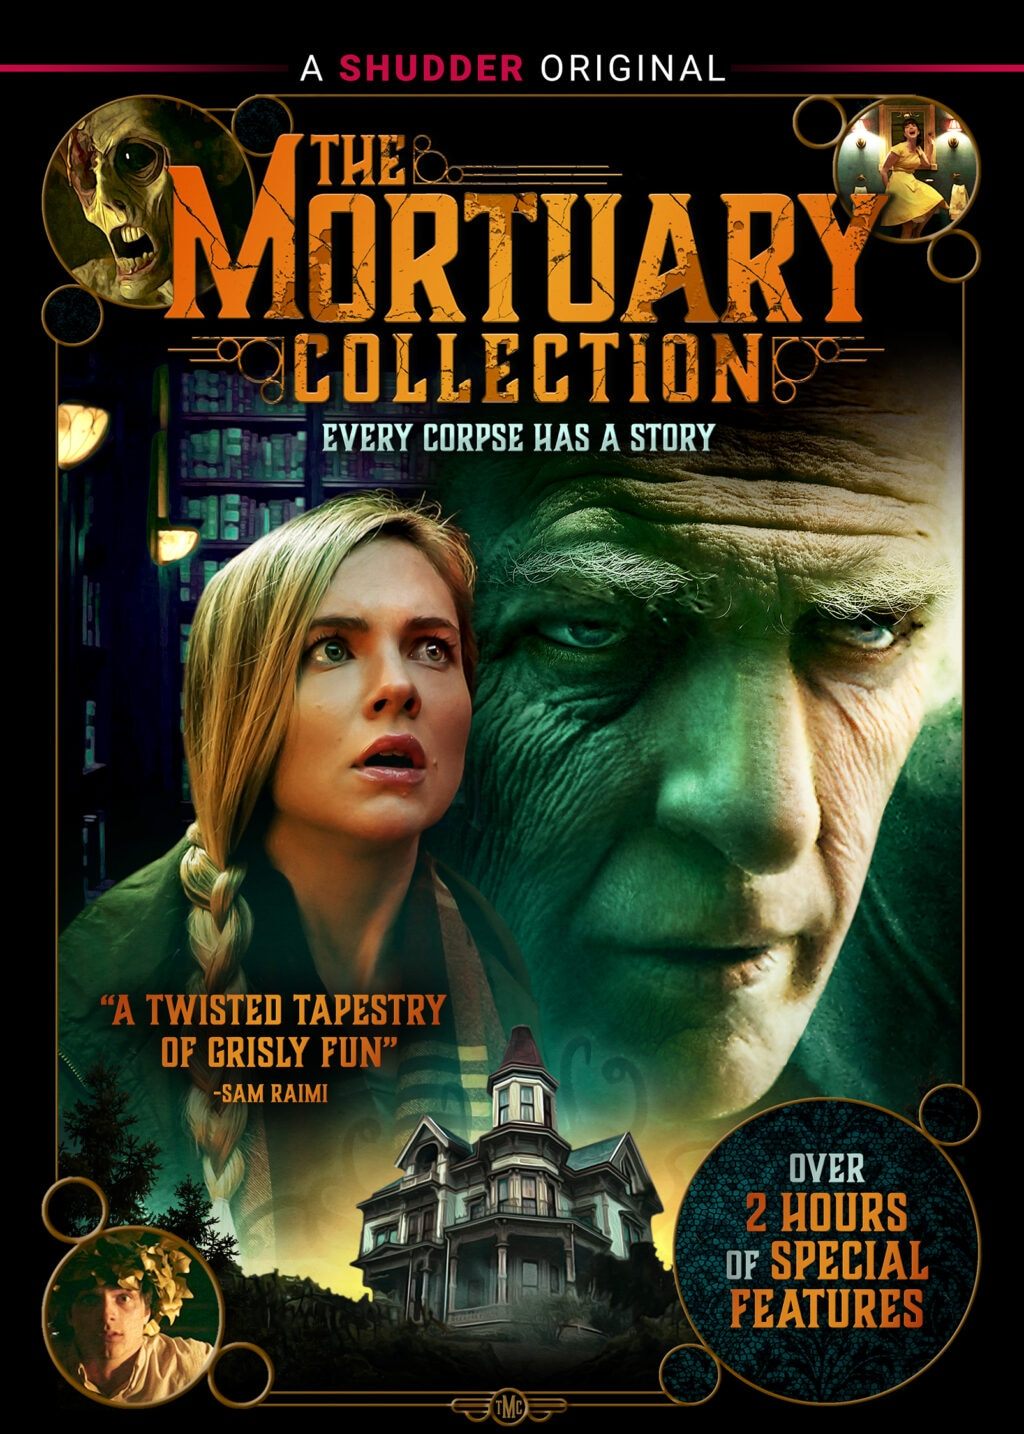 MortuaryCollection DVD HIC 1024x1434 - New Trailer Takes Us Behind-the-Scenes of THE MORTUARY COLLECTION [Video]